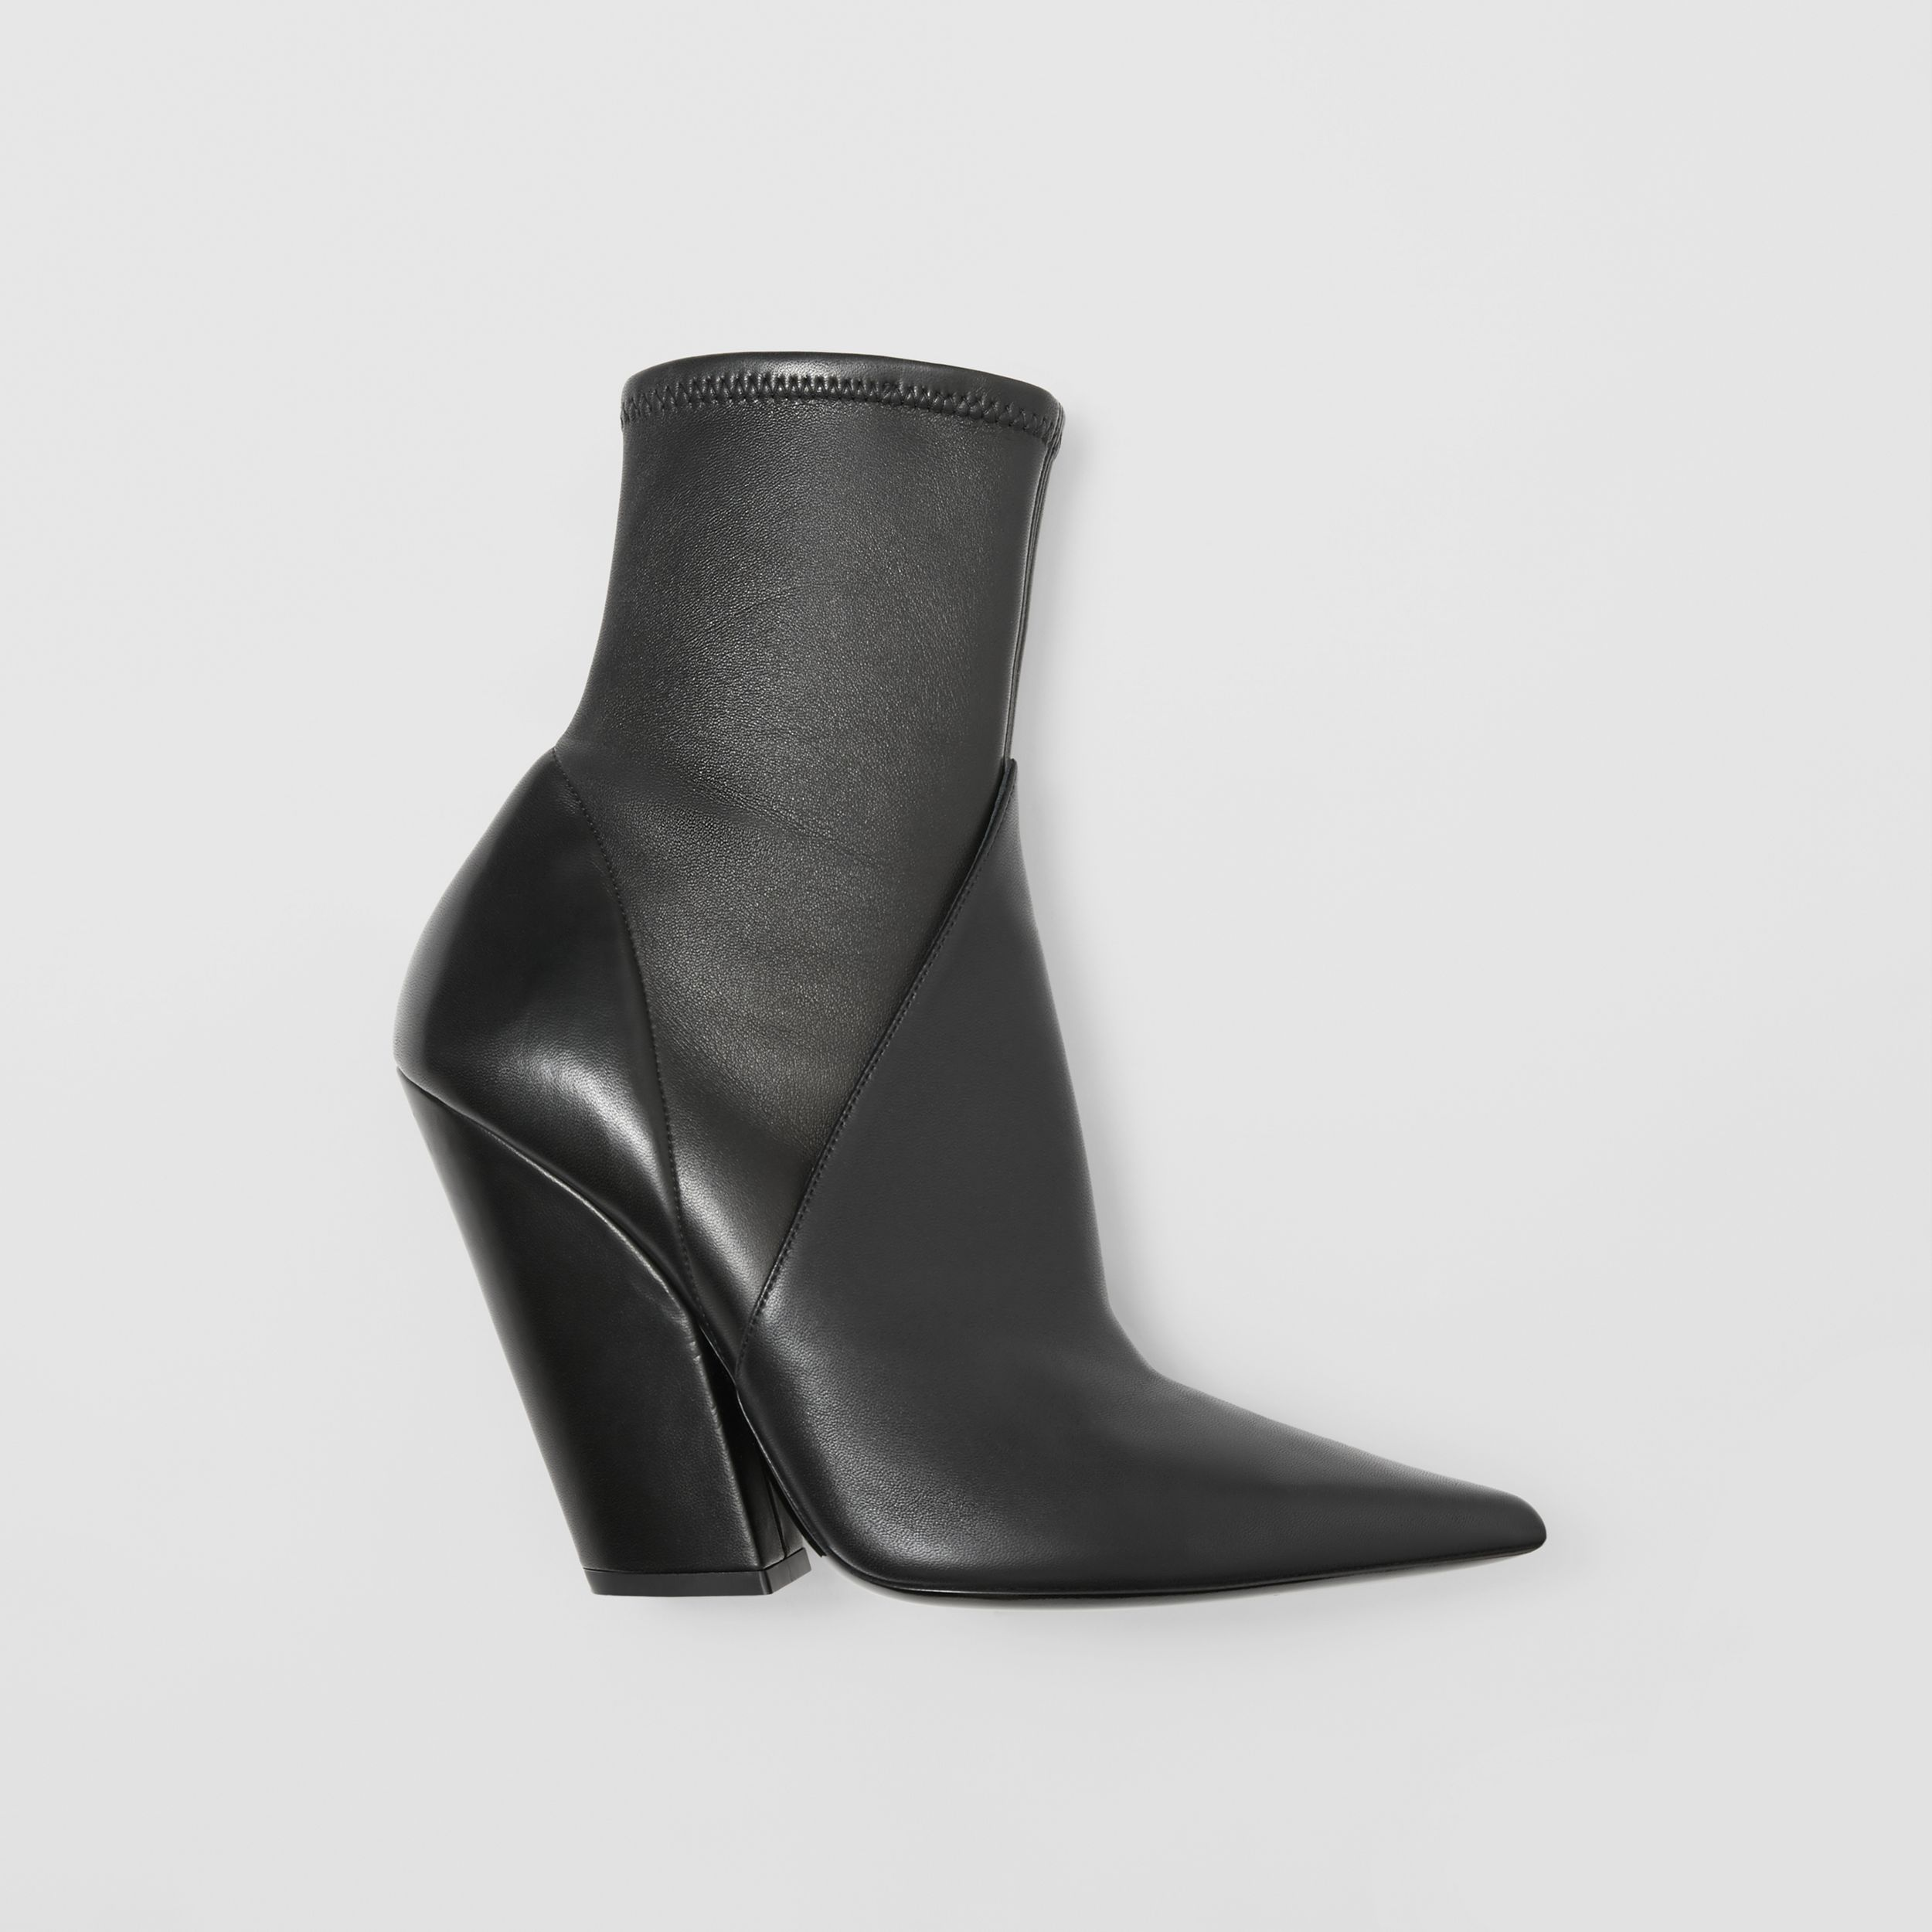 Panelled Lambskin Ankle Boots in Black - Women | Burberry - 1